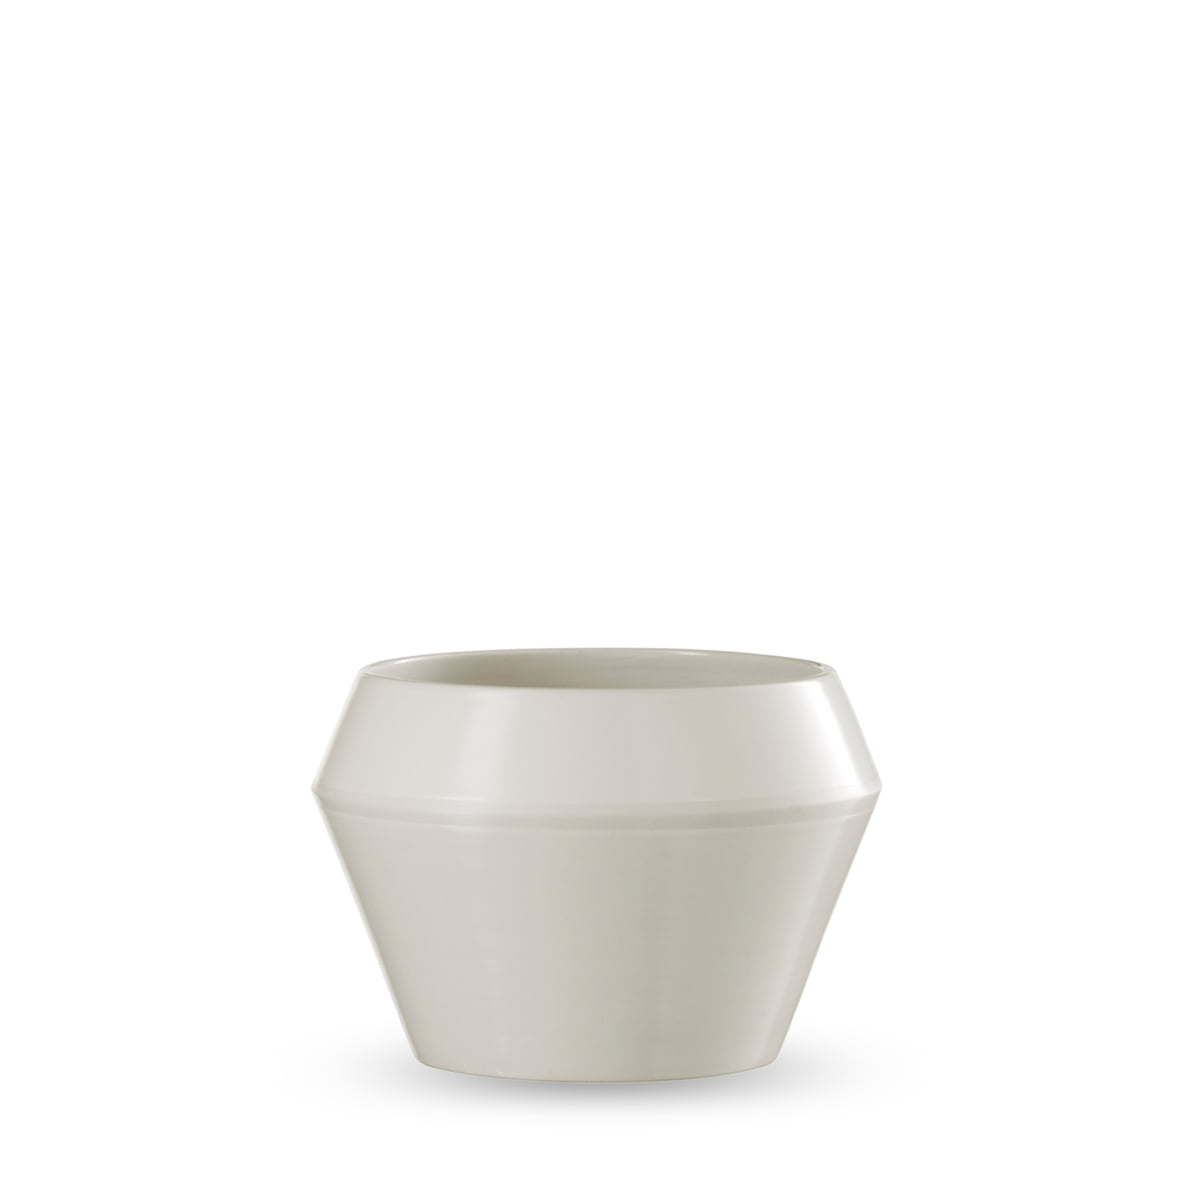 Rimm flower pot small by lassen by lassen rimm flower pot small white mightylinksfo